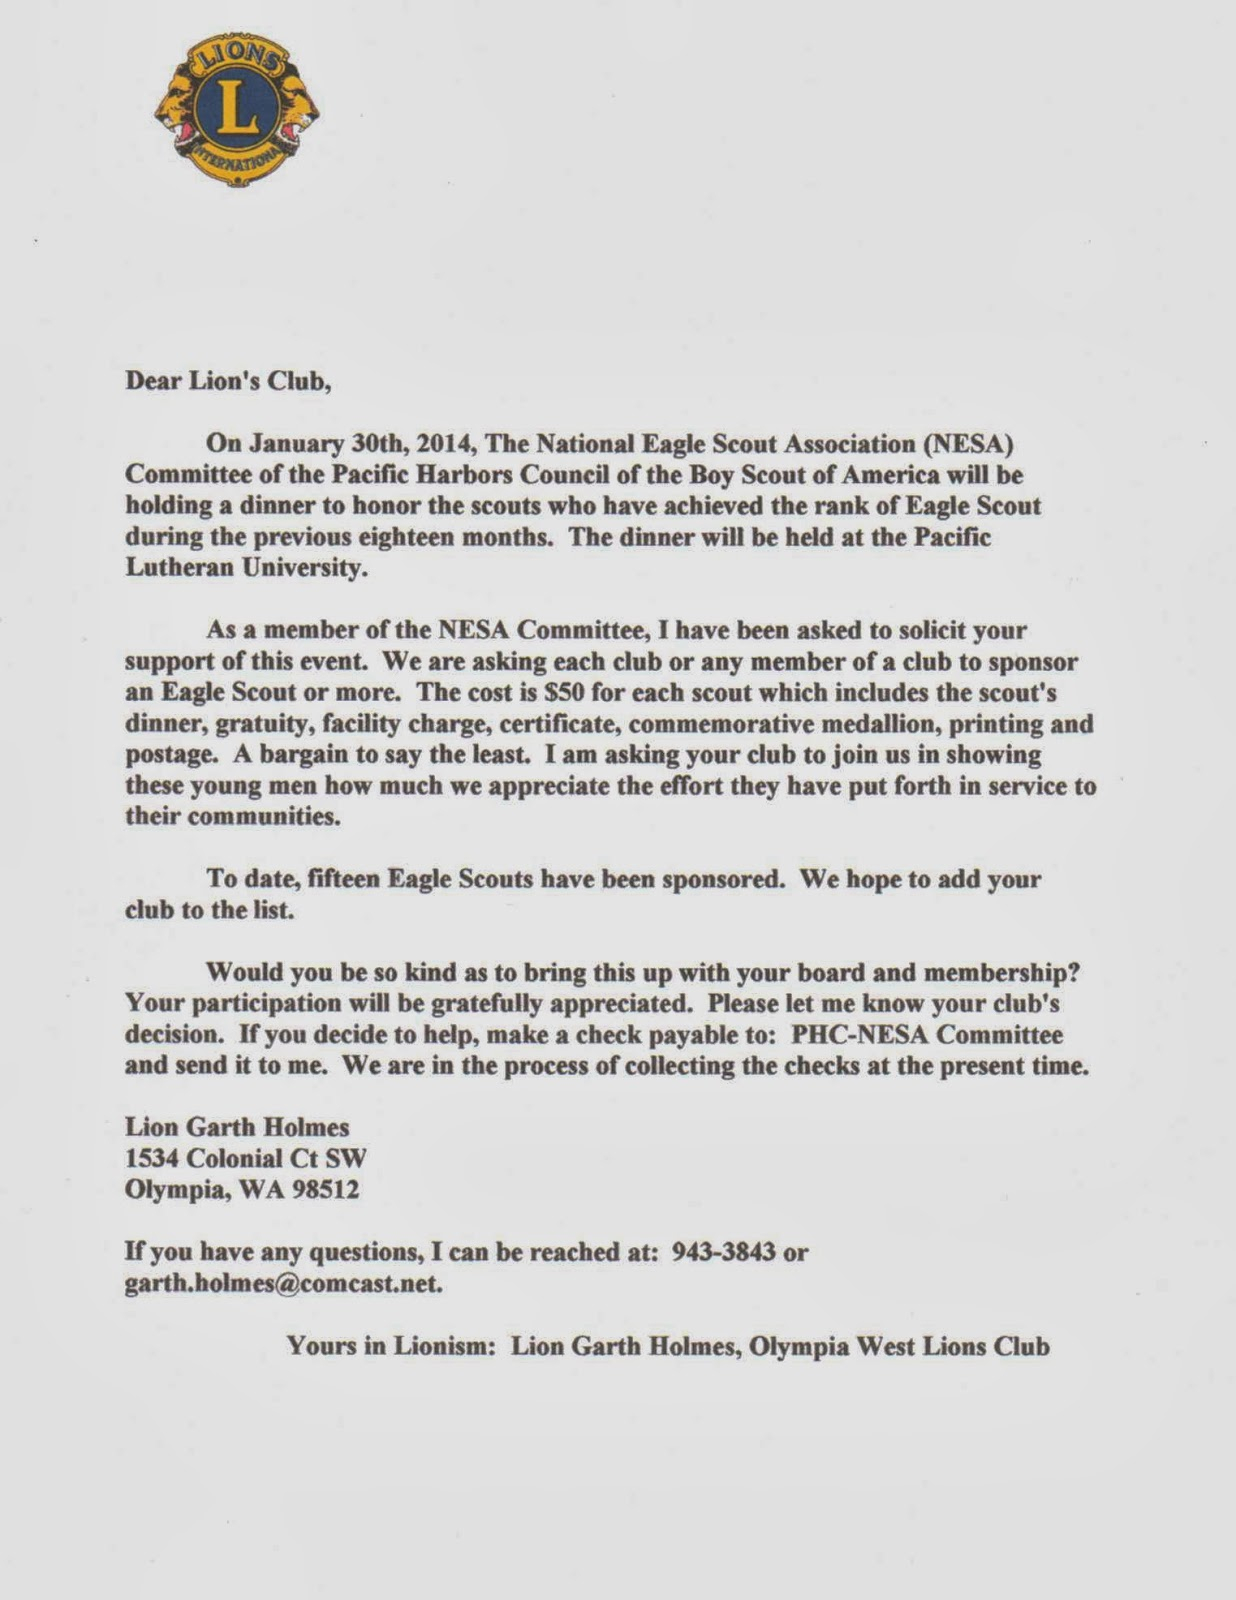 Boy Scout Donation Letter Template - Eagle Scout Thank You Letter Choice Image Letter format formal Sample